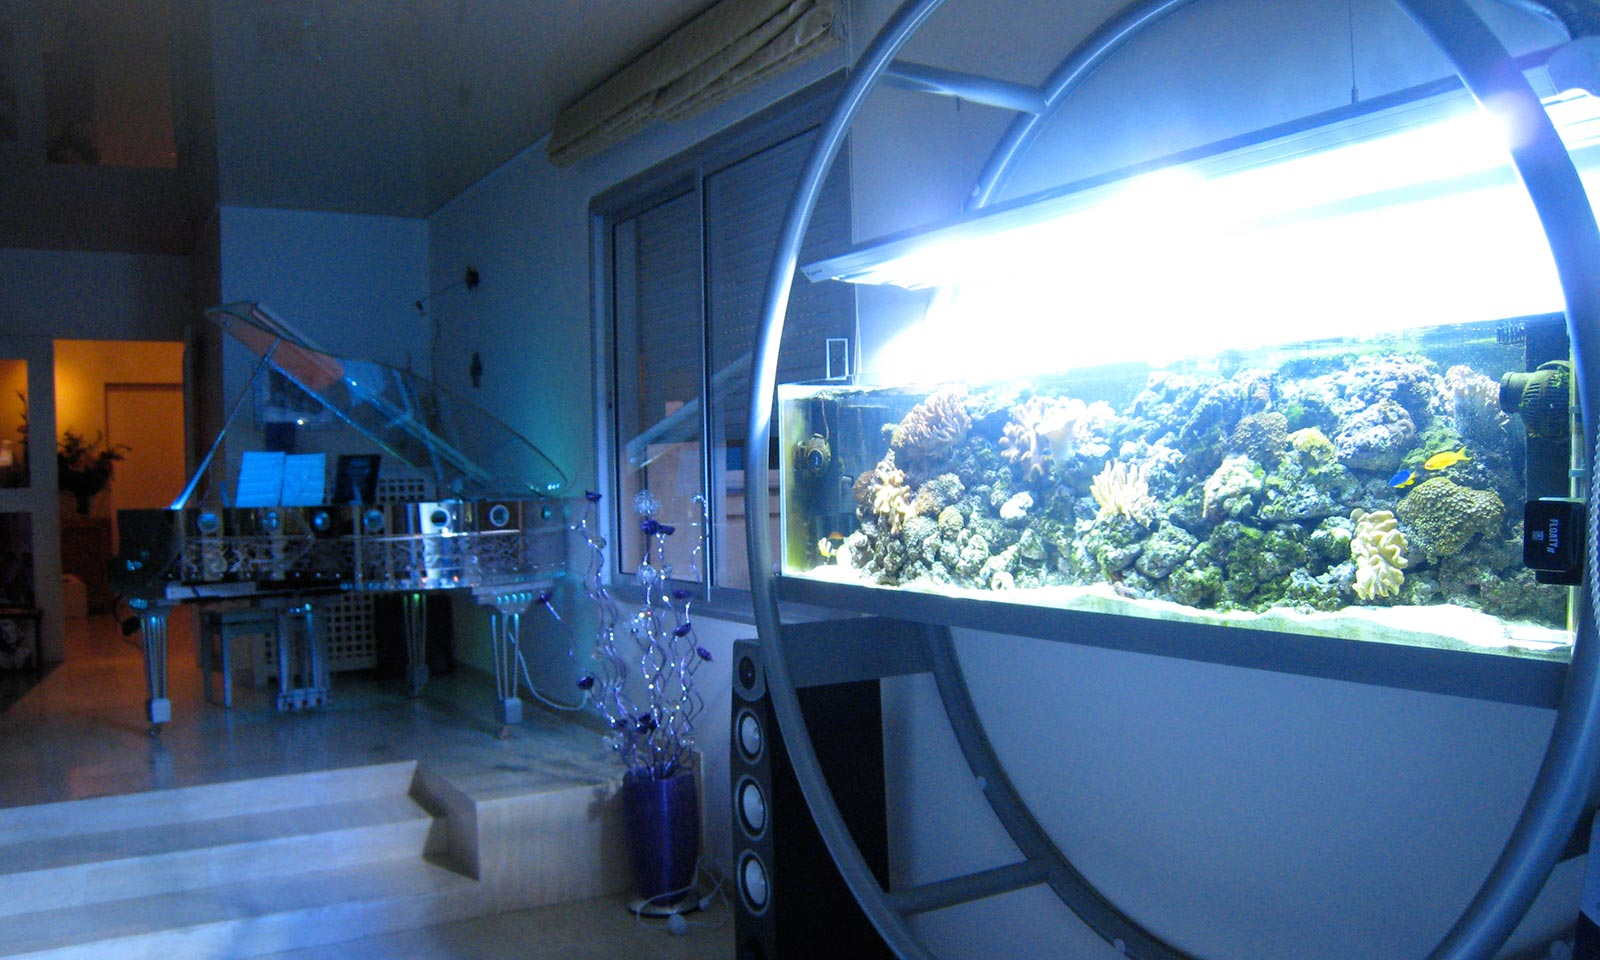 Aquarium Salle De Bain ~ by olivier clavel fountain pond and aquarium bespoke